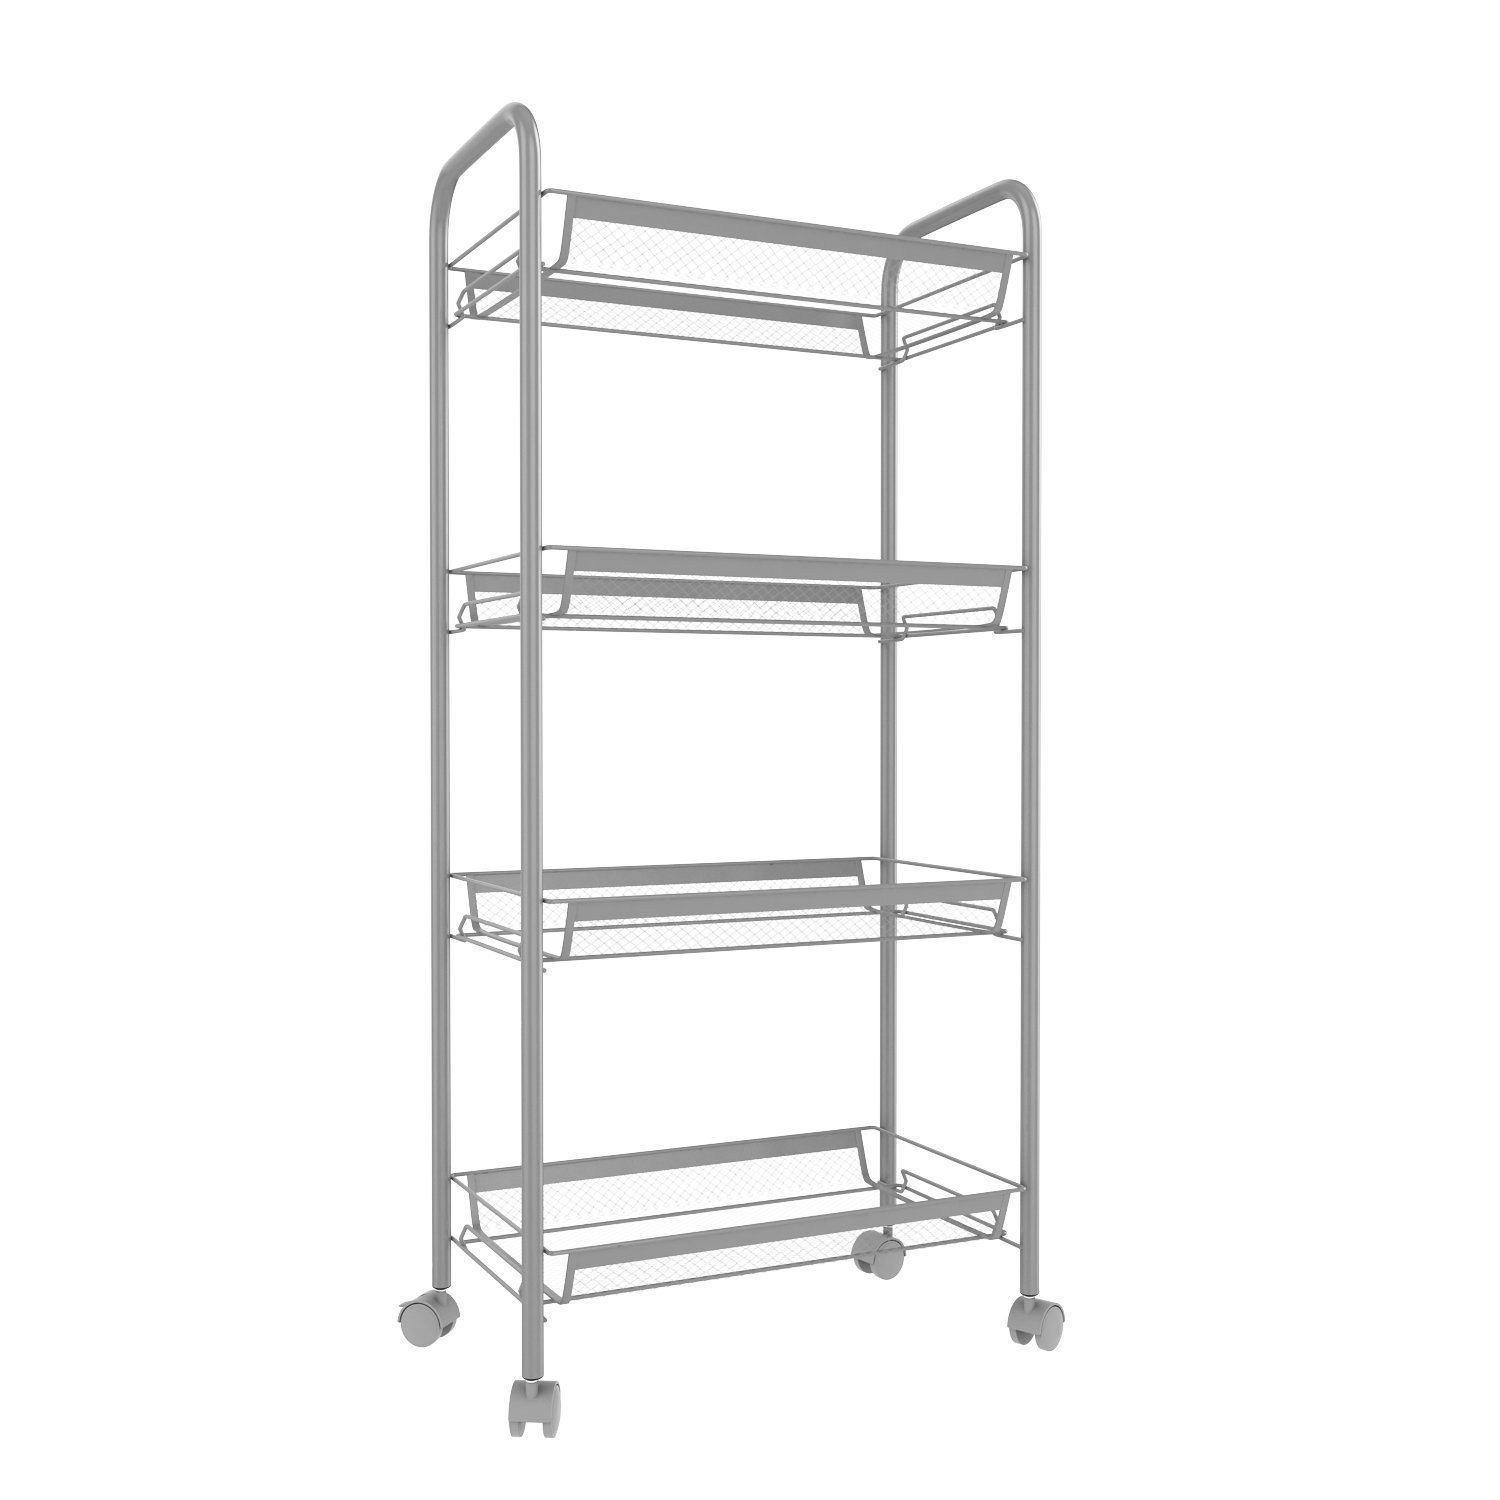 Leoneva Deluxe Heavy Duty Multi-Purpose 3/4/5-Tier Wire Mesh Rolling Cart for Home/Kitchen/Bathroom, Serving Moving Storage Utility Organization Rack with Metal Handle and Wheels (4-Tier, Silver)